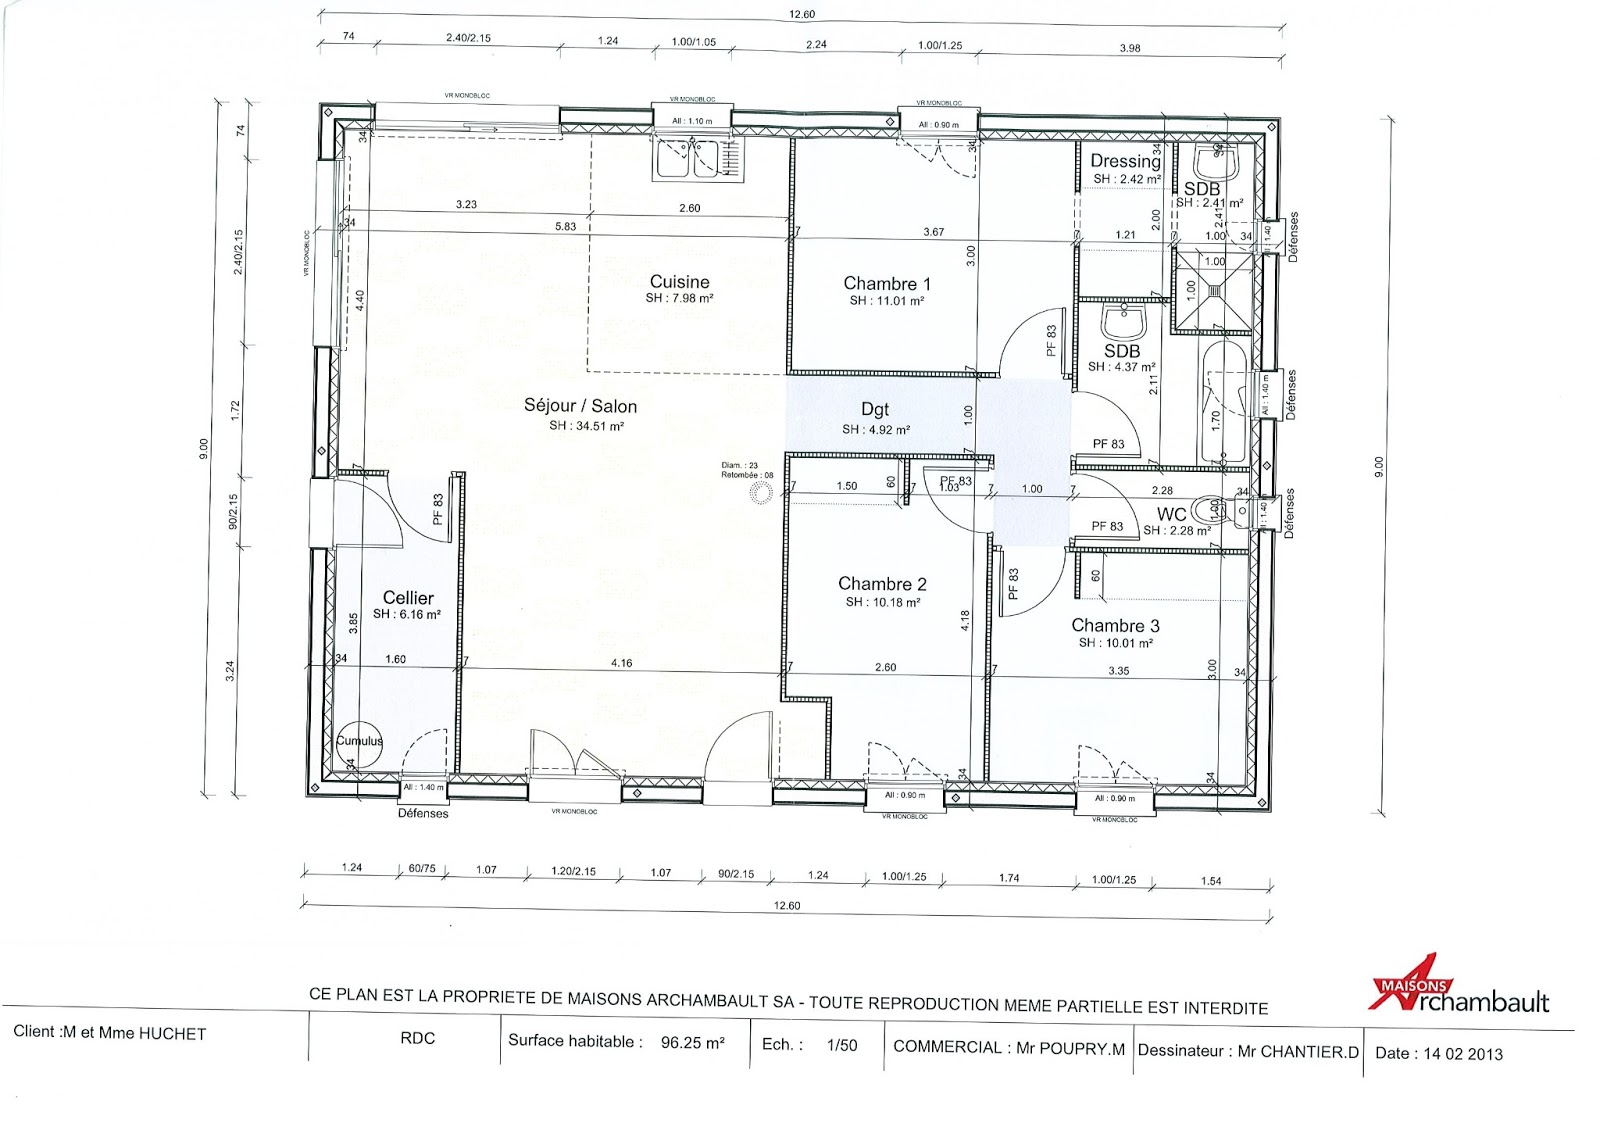 awesome affordable plan maison interieur gratuit plan maison d logiciel gratuit pour with logiciel gratuit maison with logiciel pour plan de maison gratuit - Logiciel Gratuit Pour Plan Maison